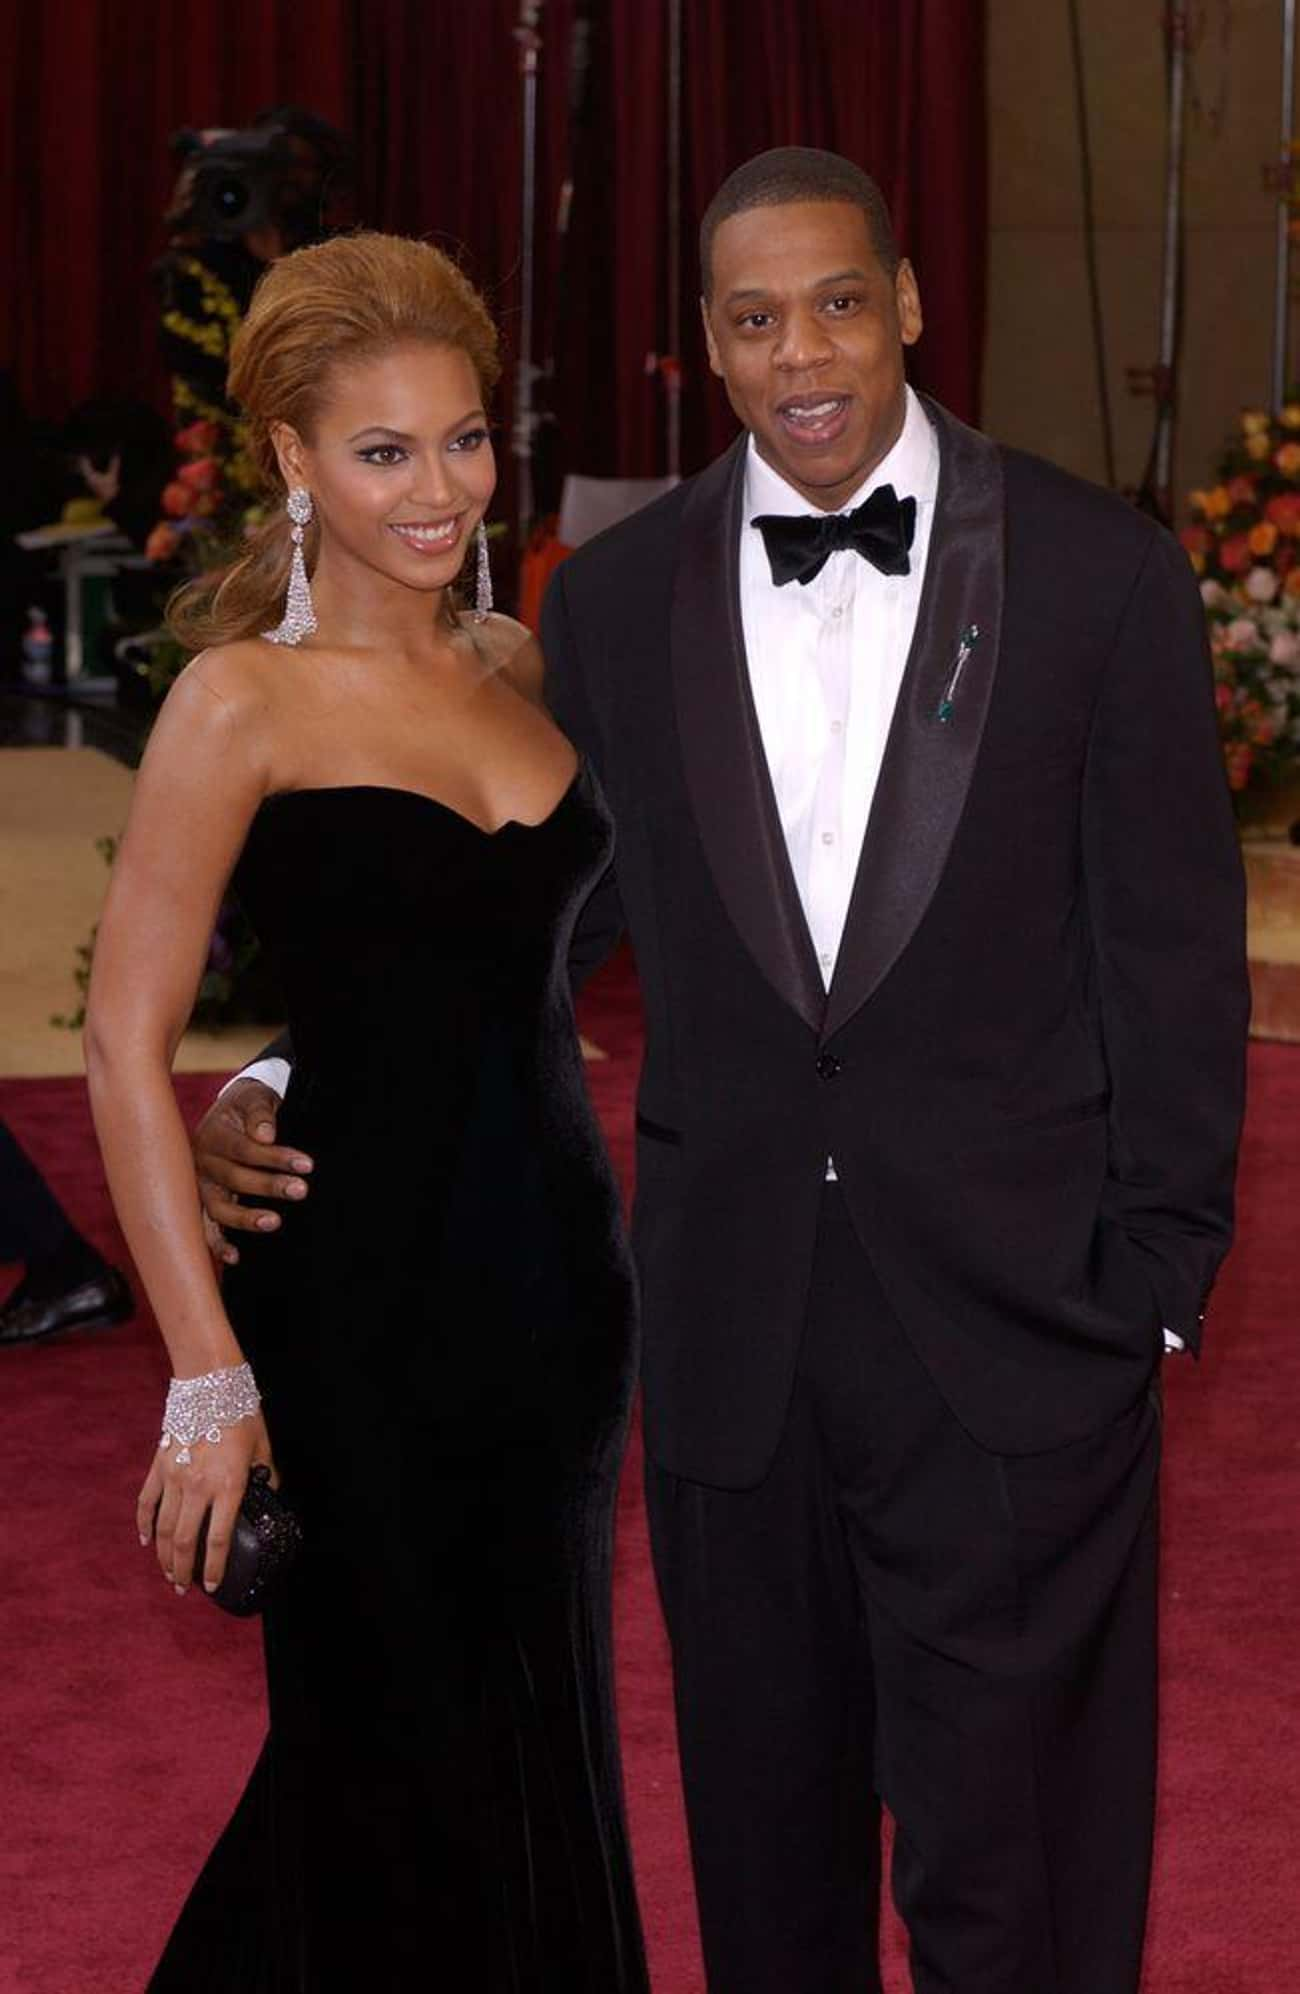 Beyoncé Knowles & Jay-Z is listed (or ranked) 4 on the list Obnoxious Celebrity Baby-Namers